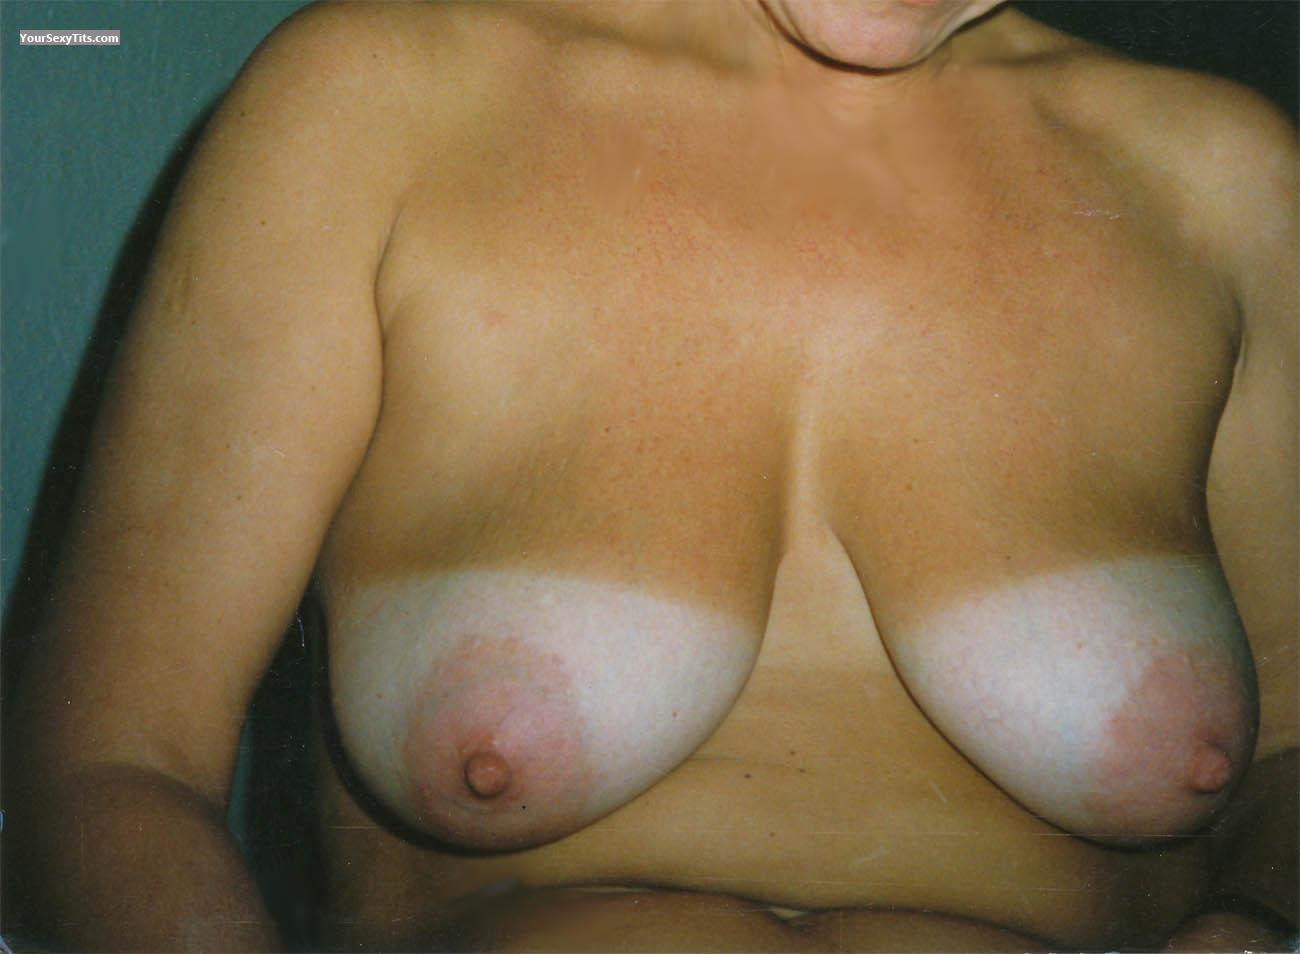 Tit Flash: Medium Tits - Topfoto from Germany